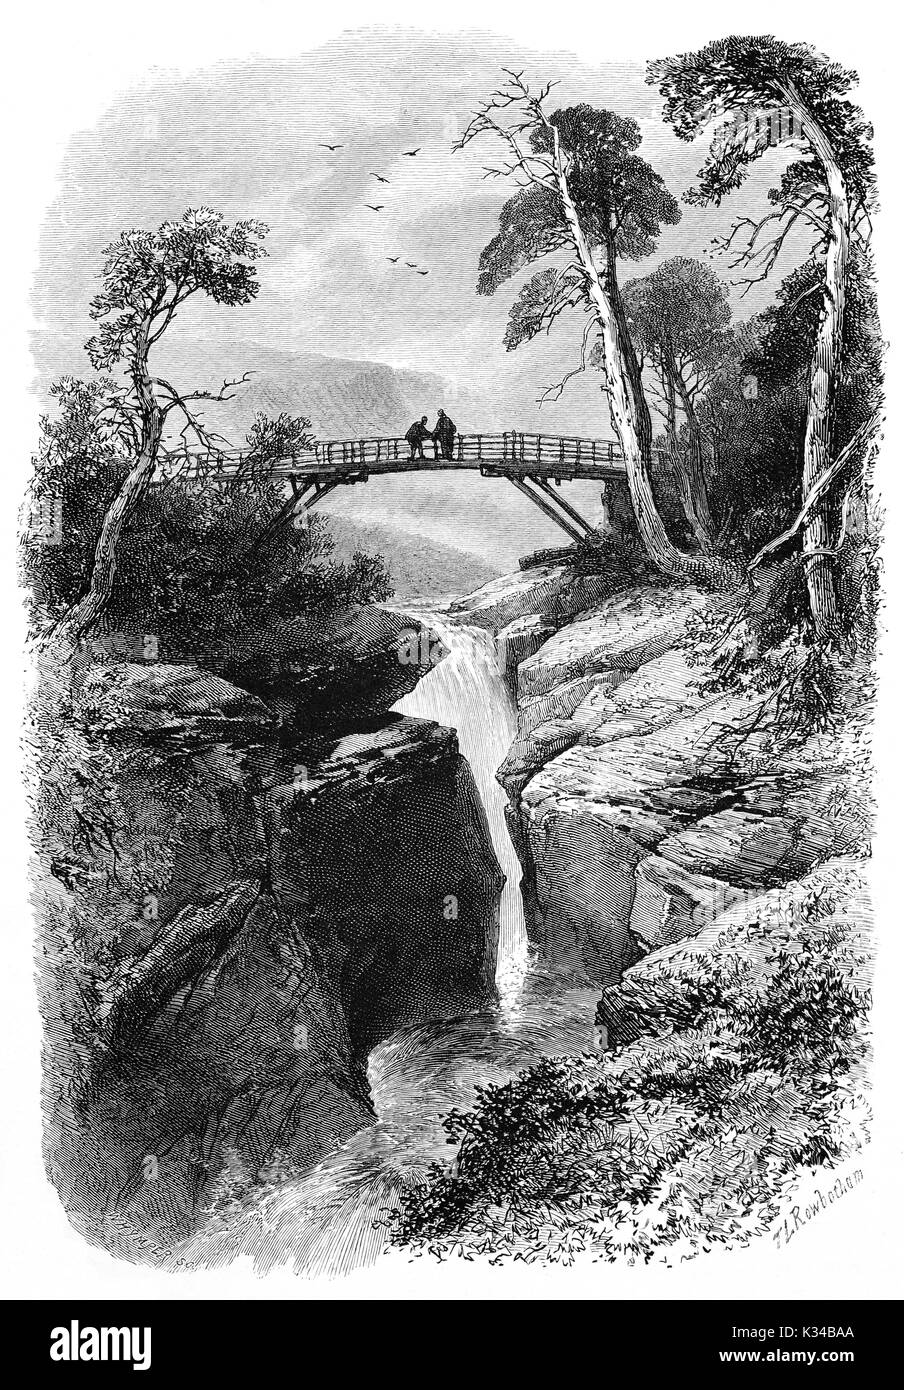 1870: Visitors on the bridge over the Linn O' Dee, a famous beauty spot, much favoured by Queen Victoria. The River Dee runs through a narrow channel and drops into rocky pools below.  Braemar, Aberdeenshire, Scotland - Stock Image